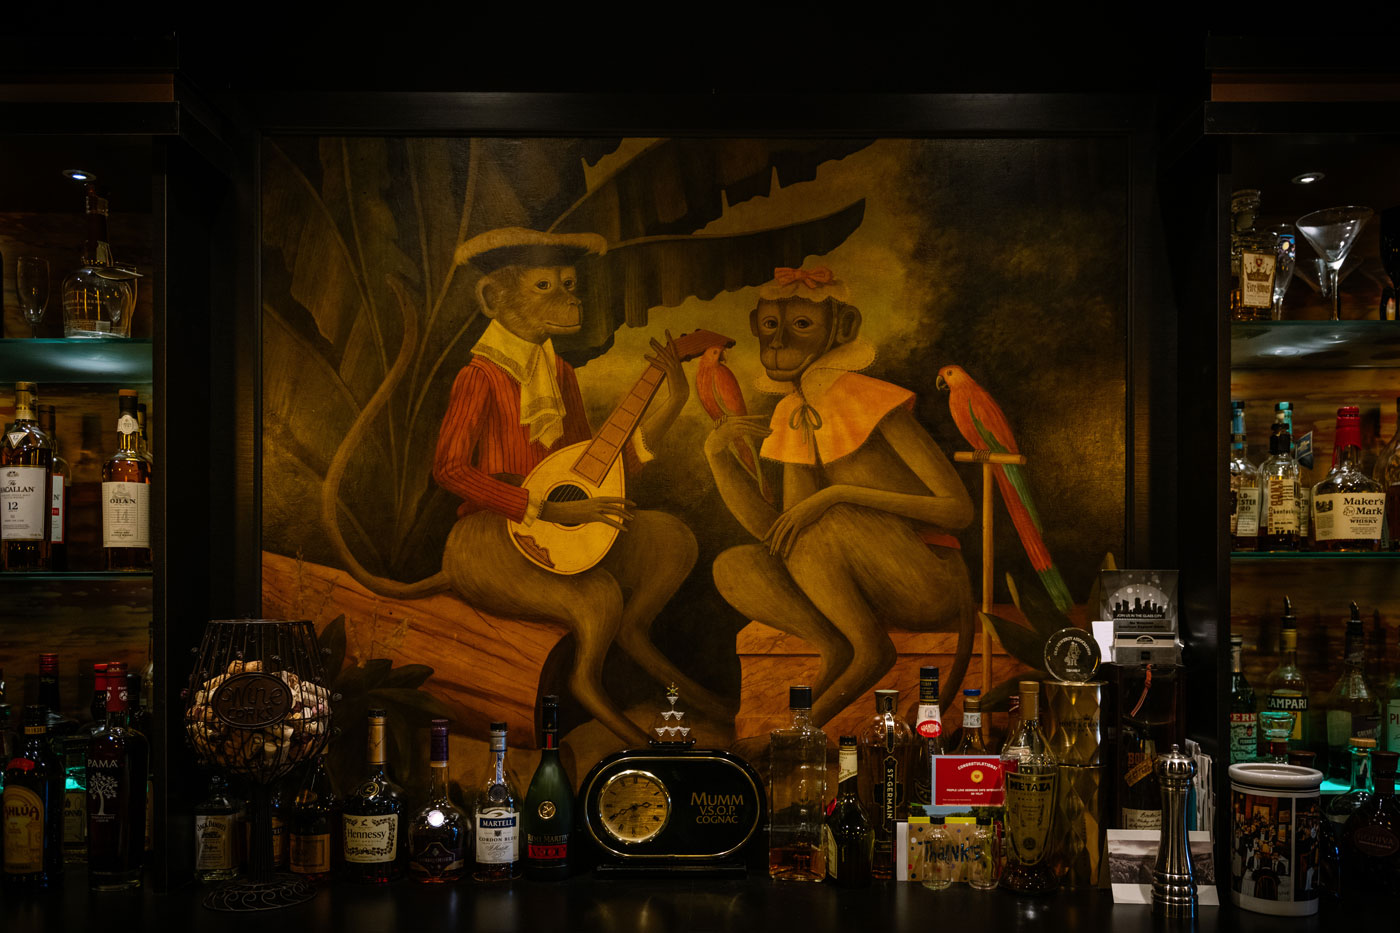 Georgios-mural-by-bar.jpg